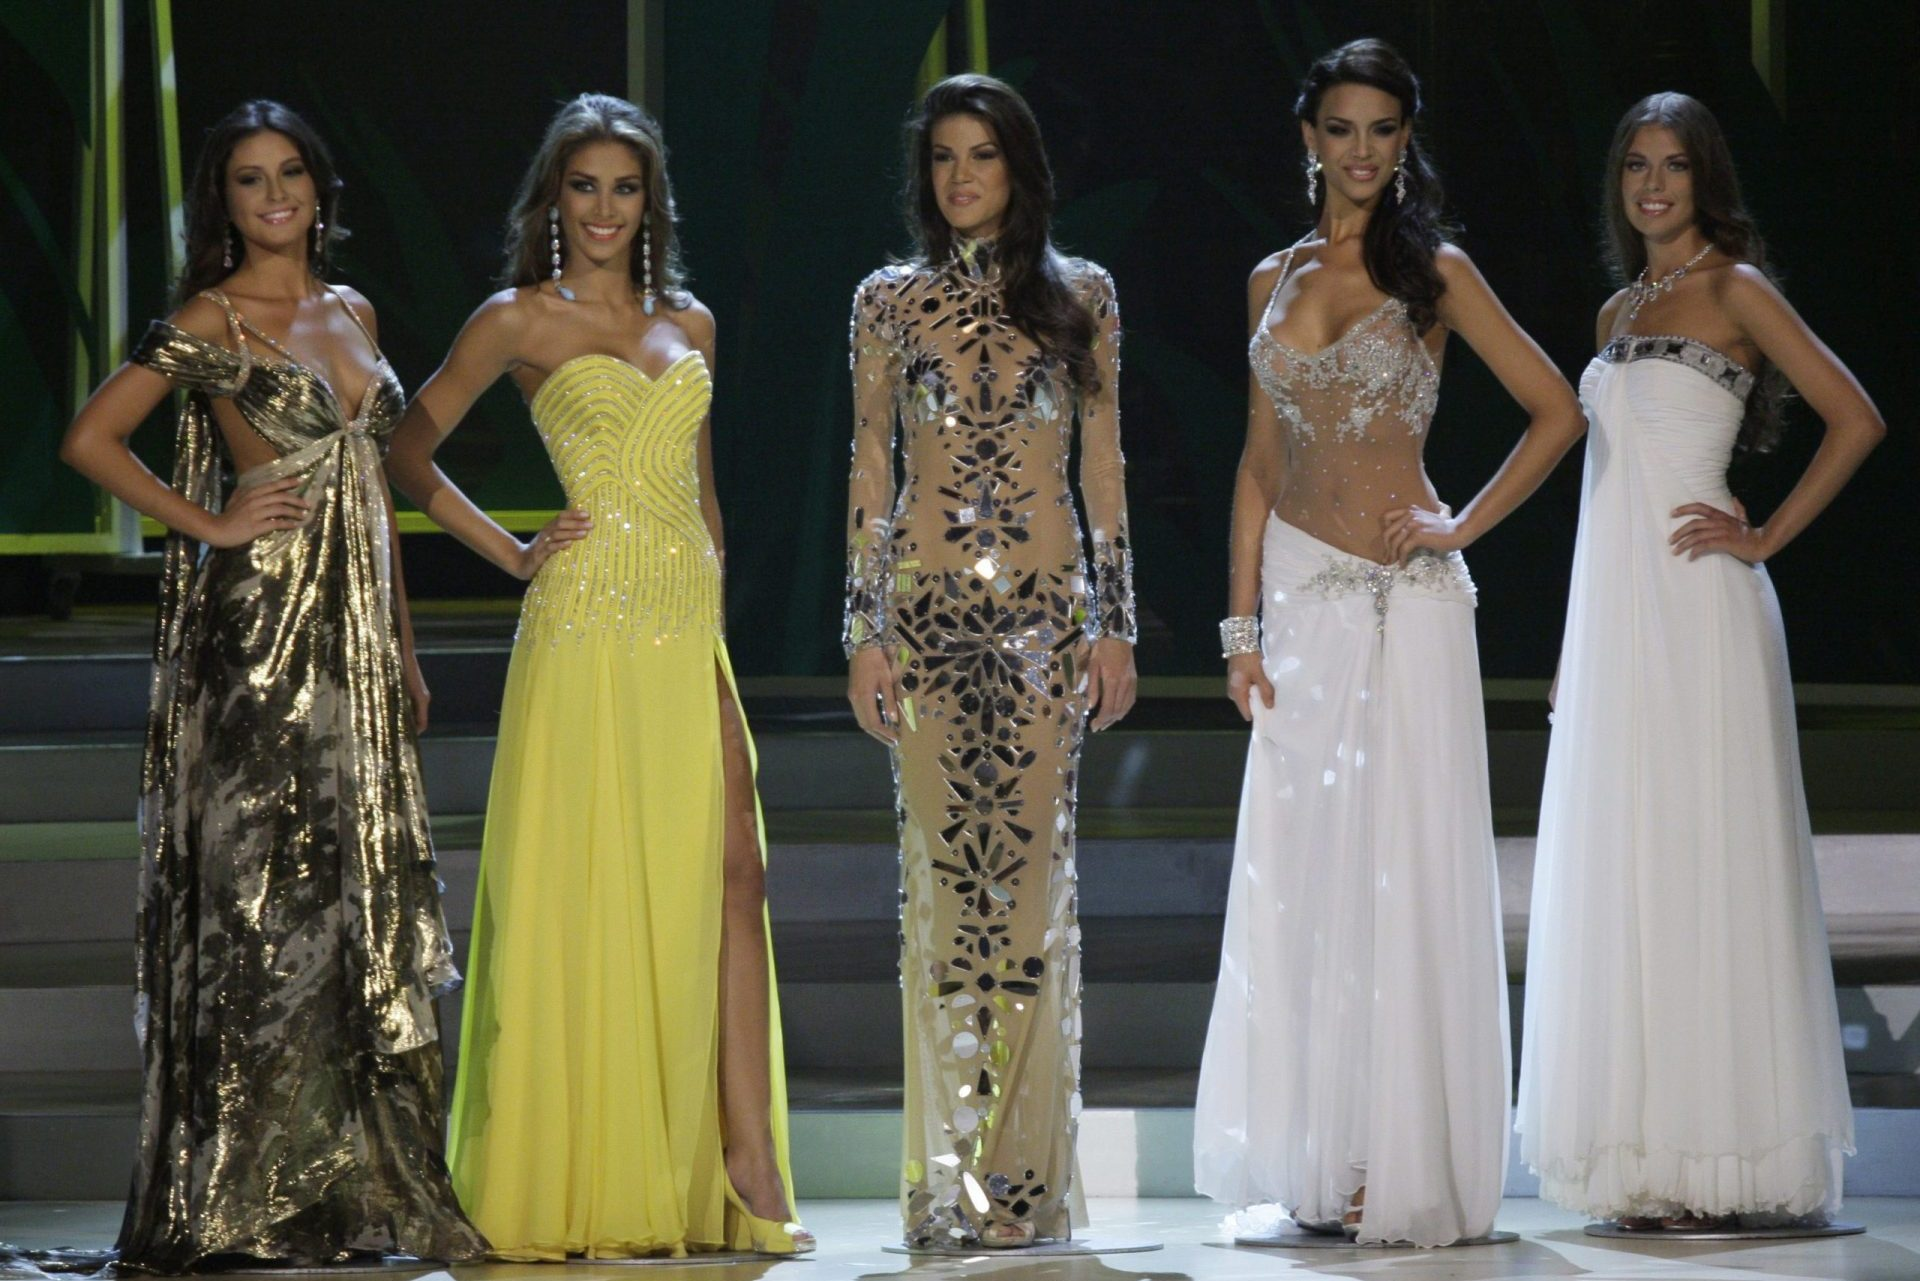 Memorable scandals in the history of Miss Universe